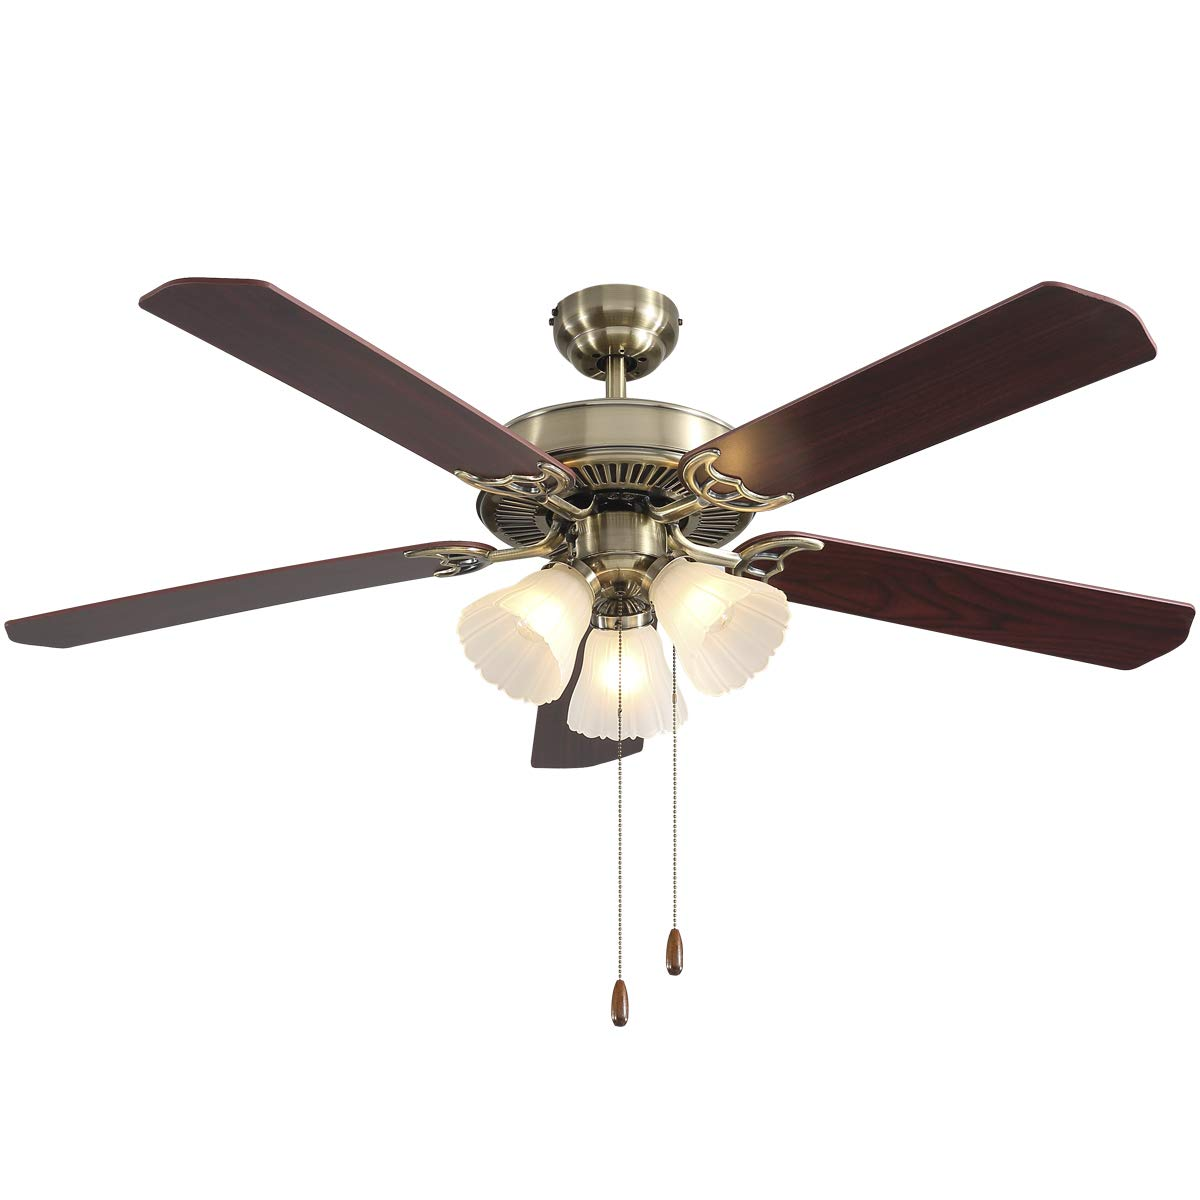 PUSU 52-inch Indoor Ceiling fan,Fan Light with Pull Chain Control,Wood Fan Blade Match Bronze Cover for Dining Room Bedroom Living Room Kitchen and Restaurant.